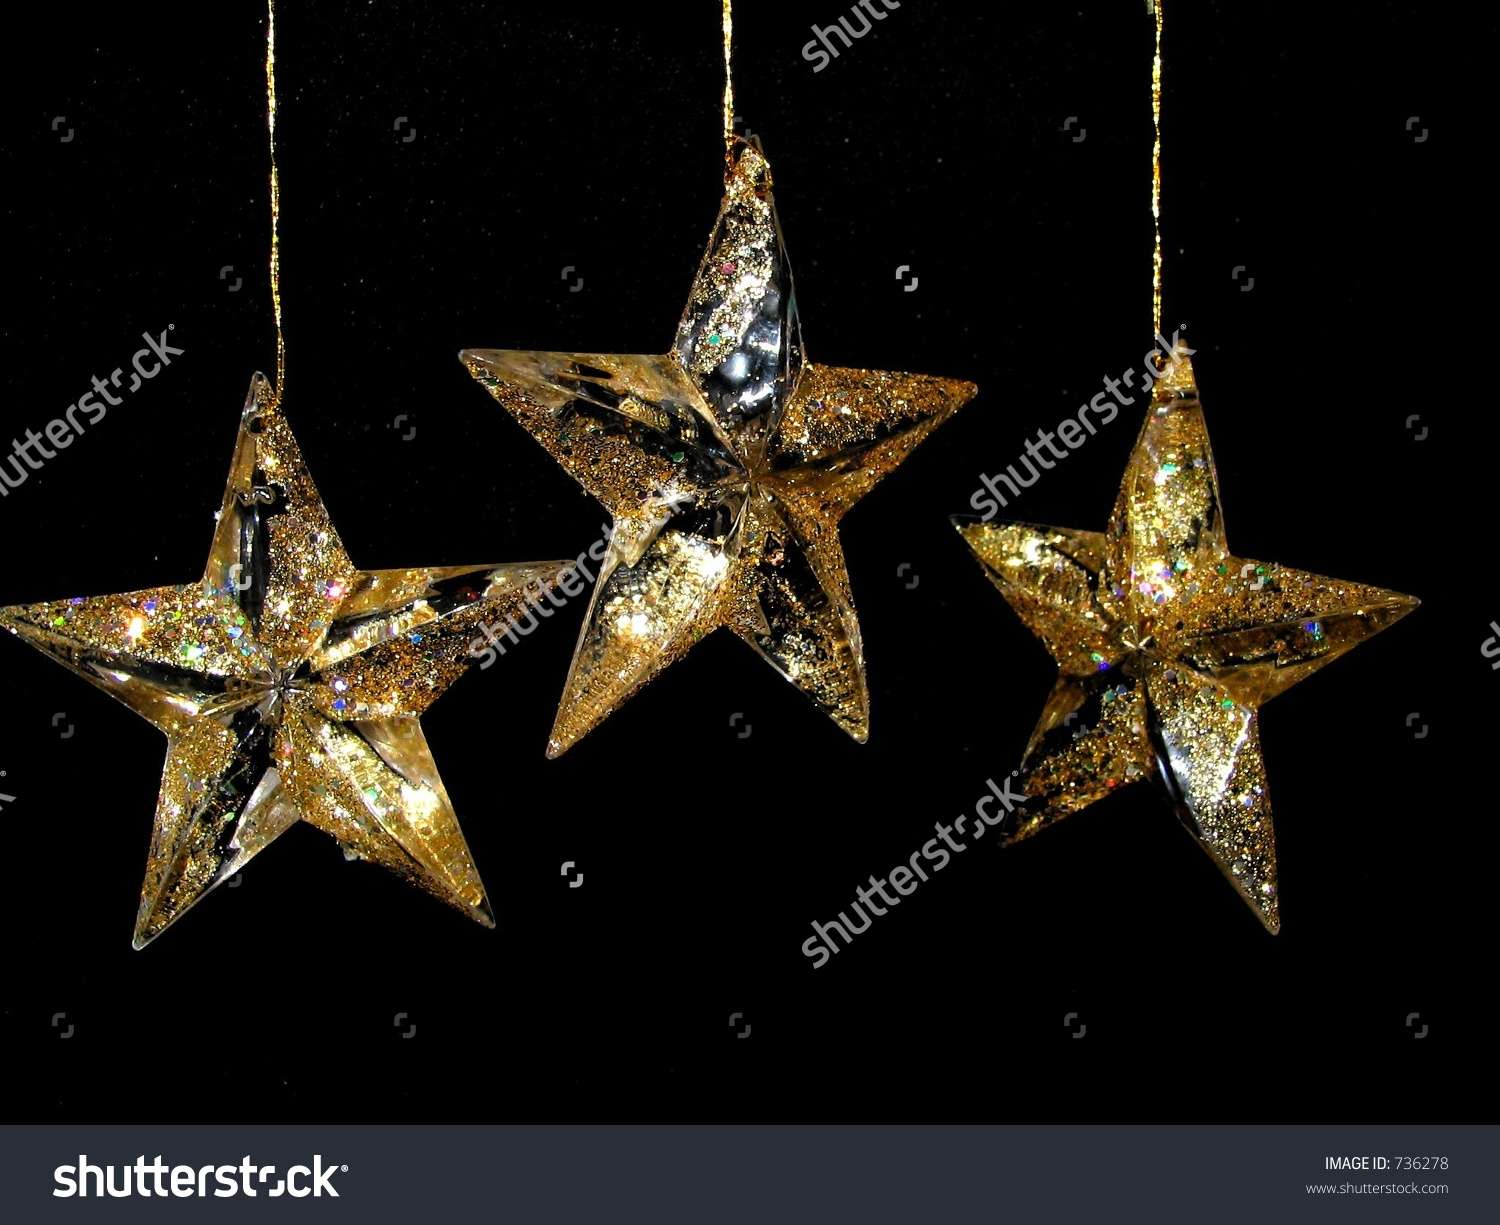 Christmas Star Decorations Shutterstock